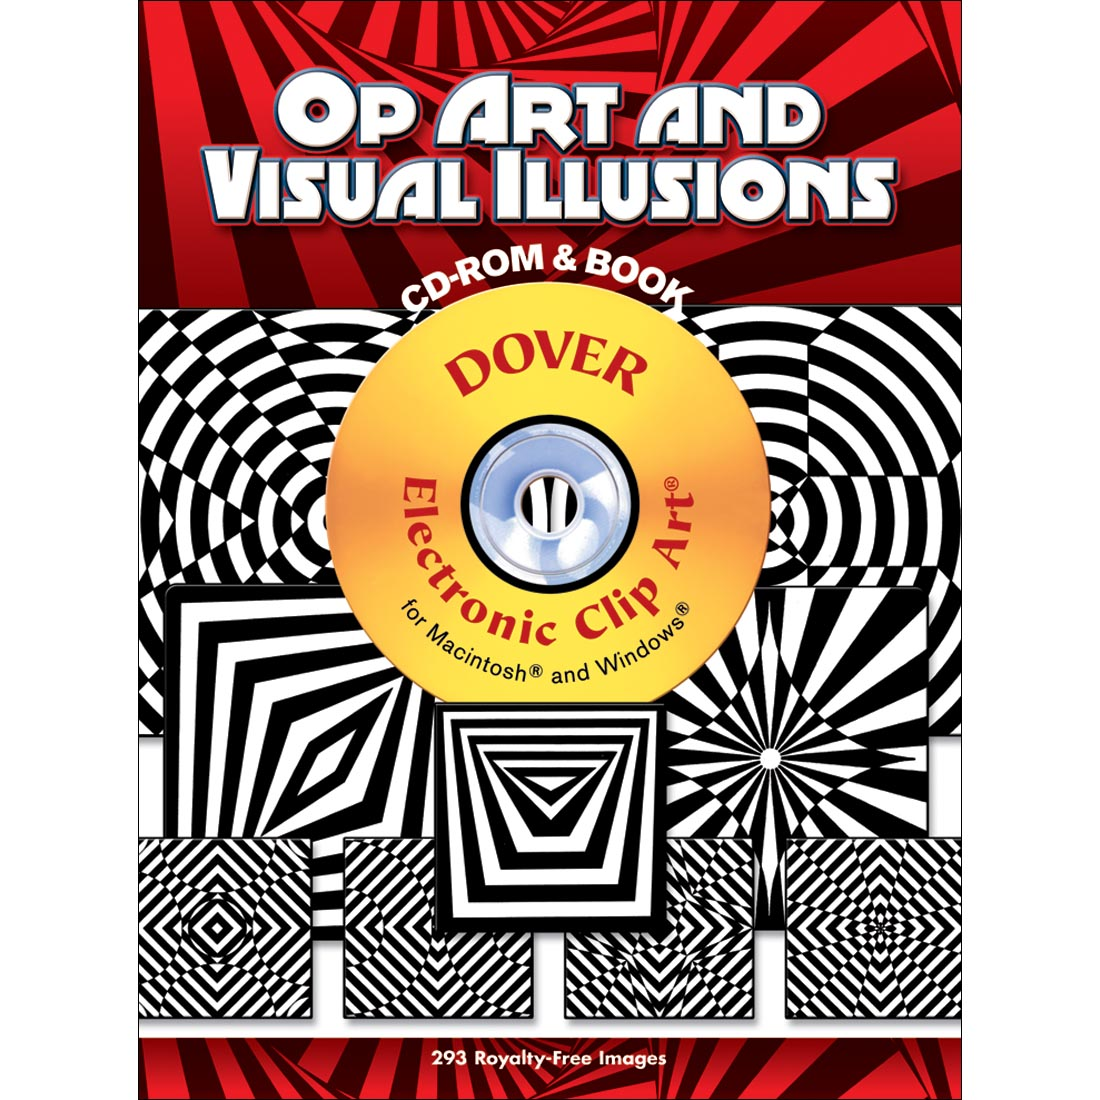 Op Art & Visual Illusions Electronic Clip Art by Dover.